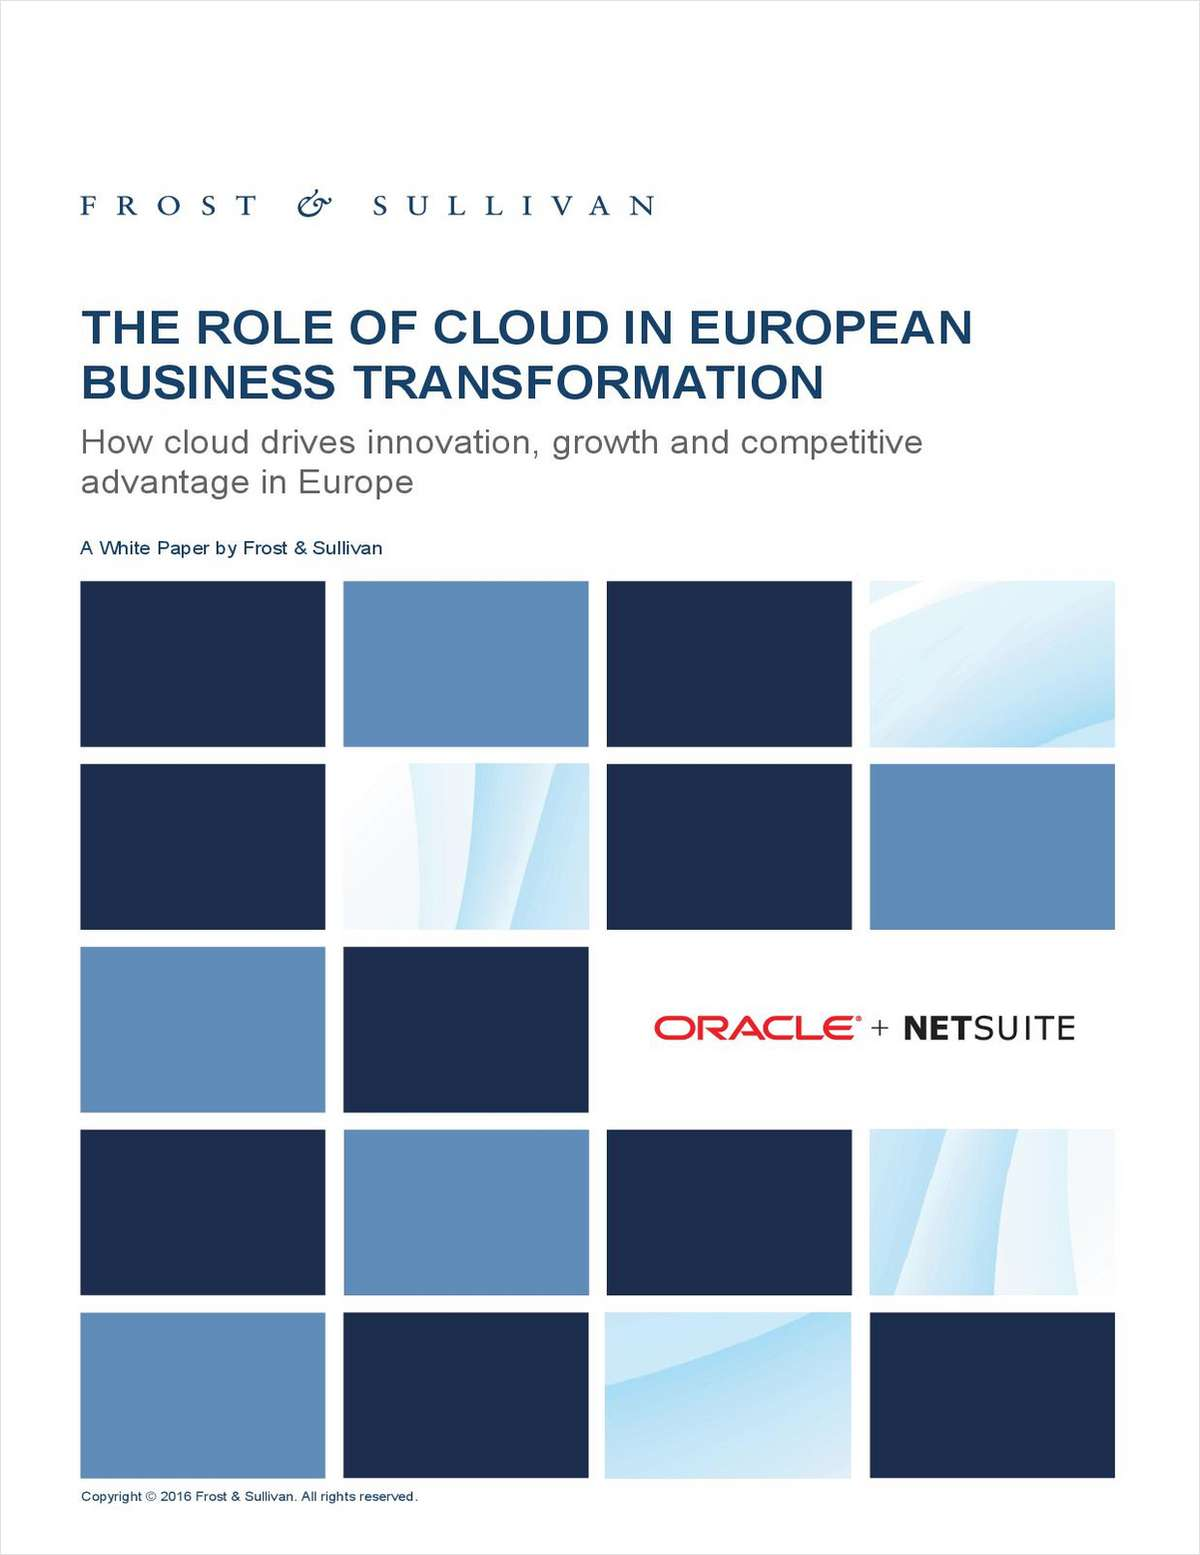 The Role of Cloud in European Business Transformation